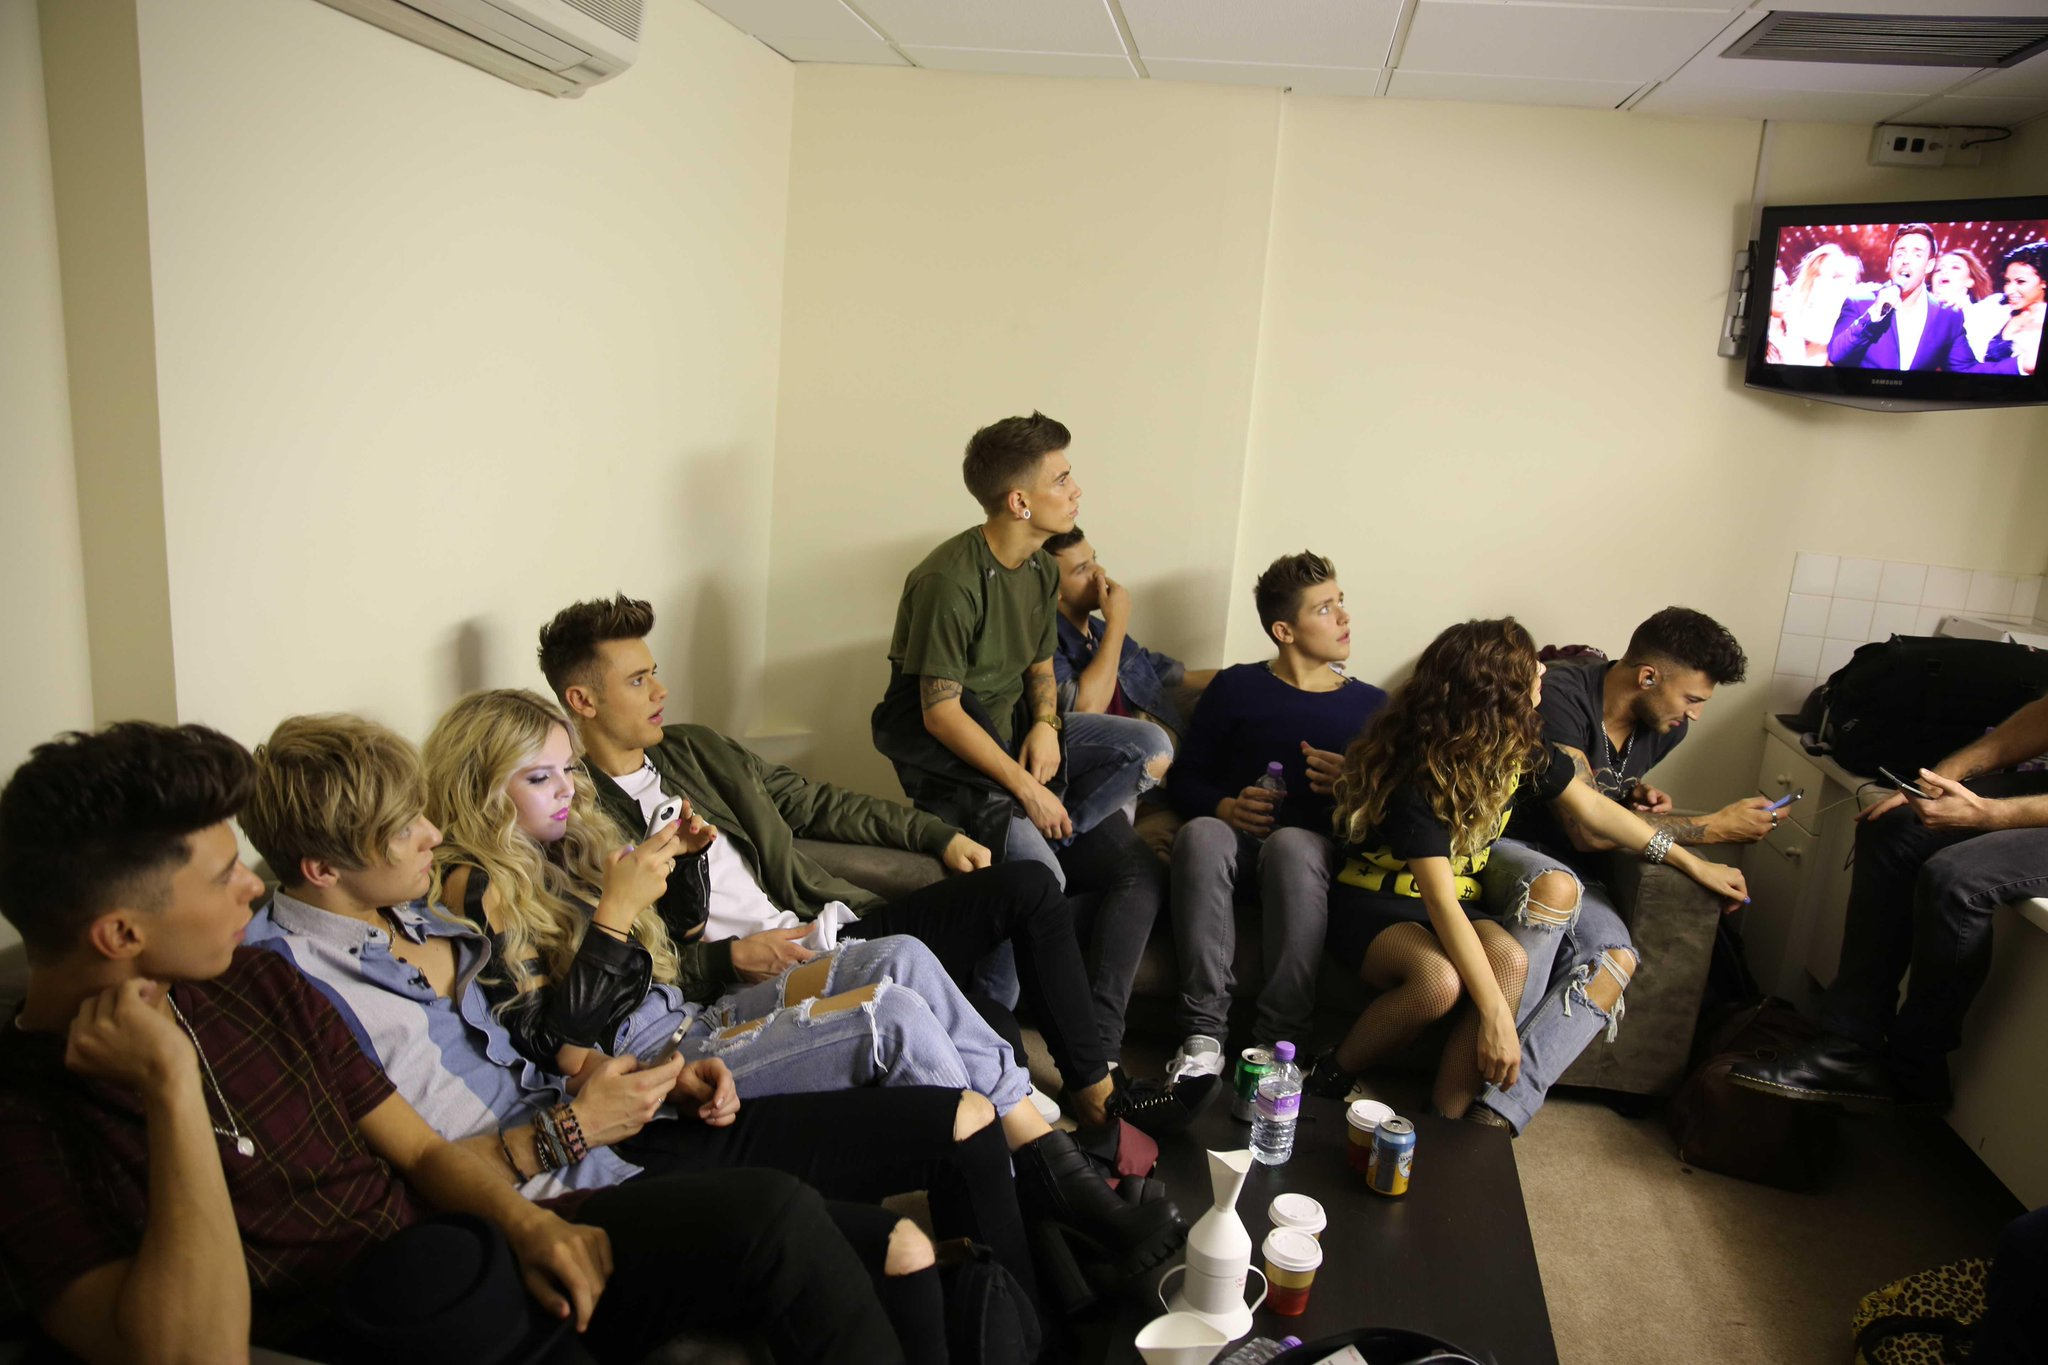 We've uploaded some exclusive BTS pics from last week's @TheXFactor on our FB! Like this one…http://t.co/hJu7l0eR3O http://t.co/grcmhPR1ym